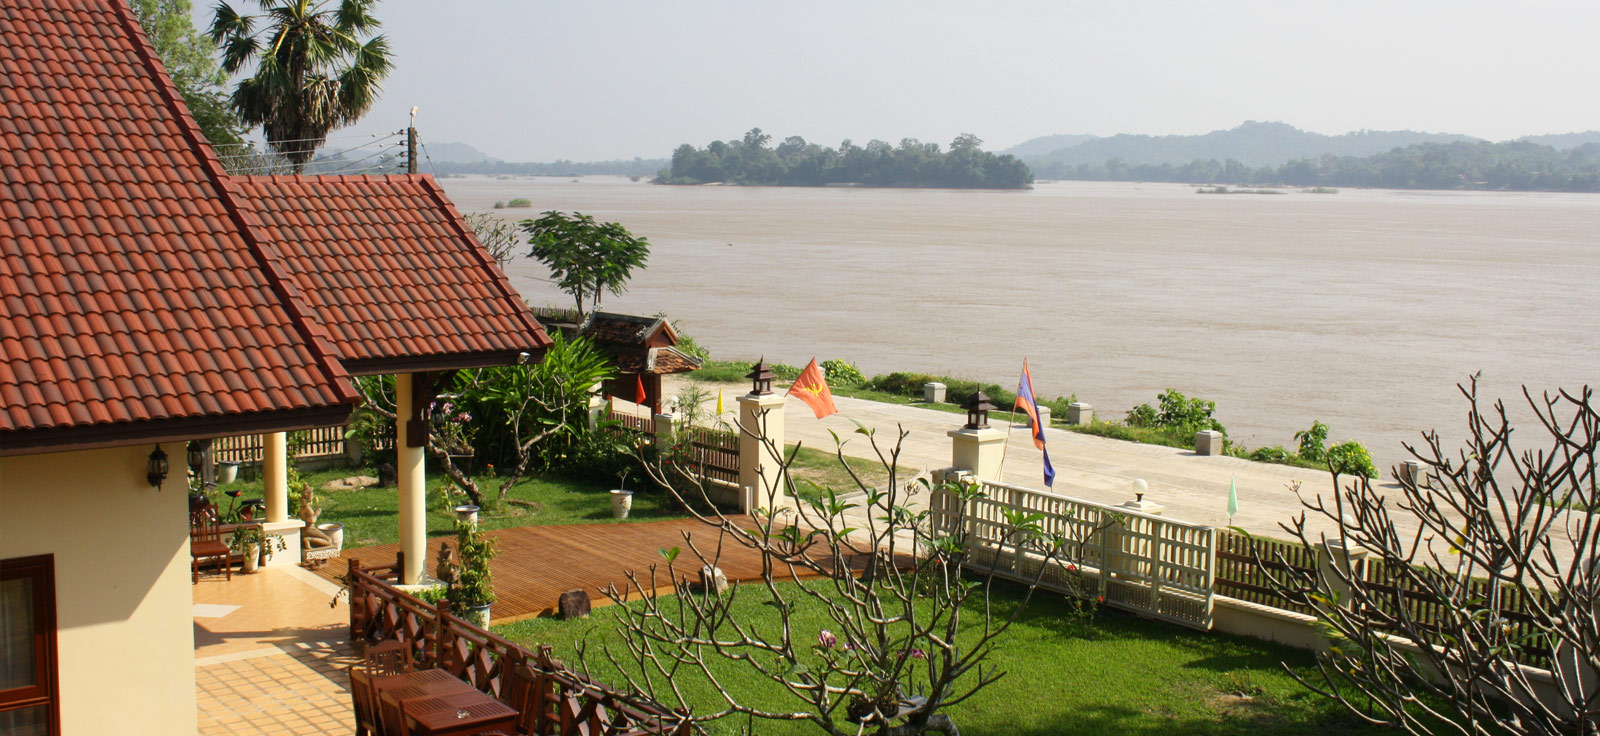 Hôtel traditionnel au Laos